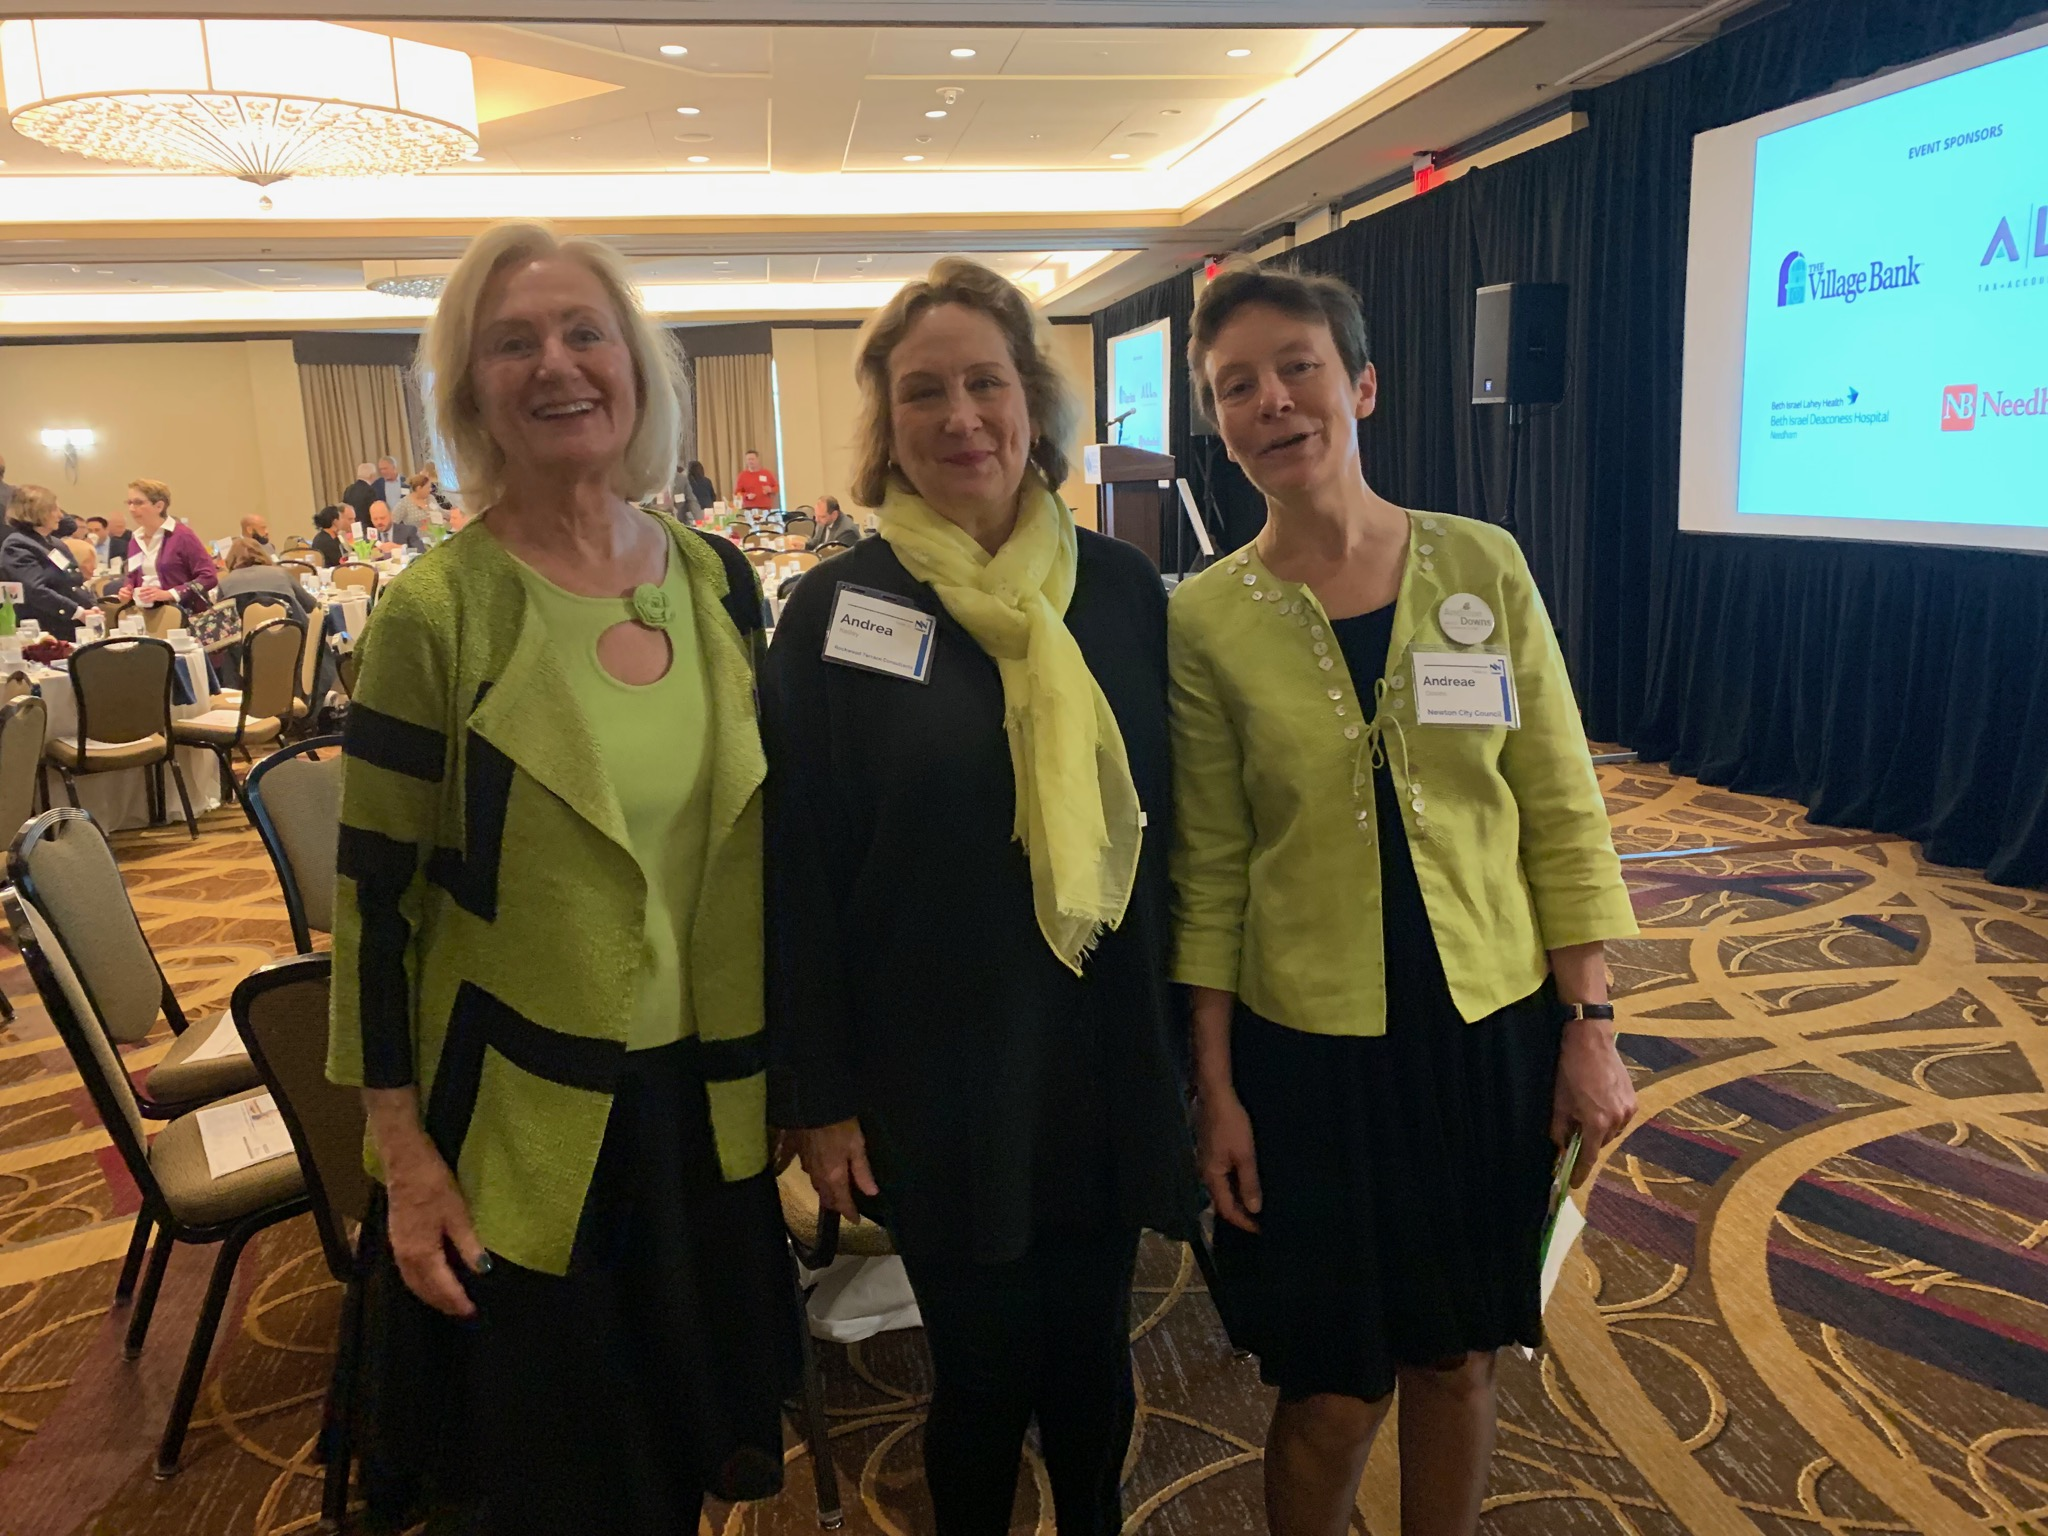 Councilors Danberg, Kelley and Downs all got the color memo for the NNCC breakfast!